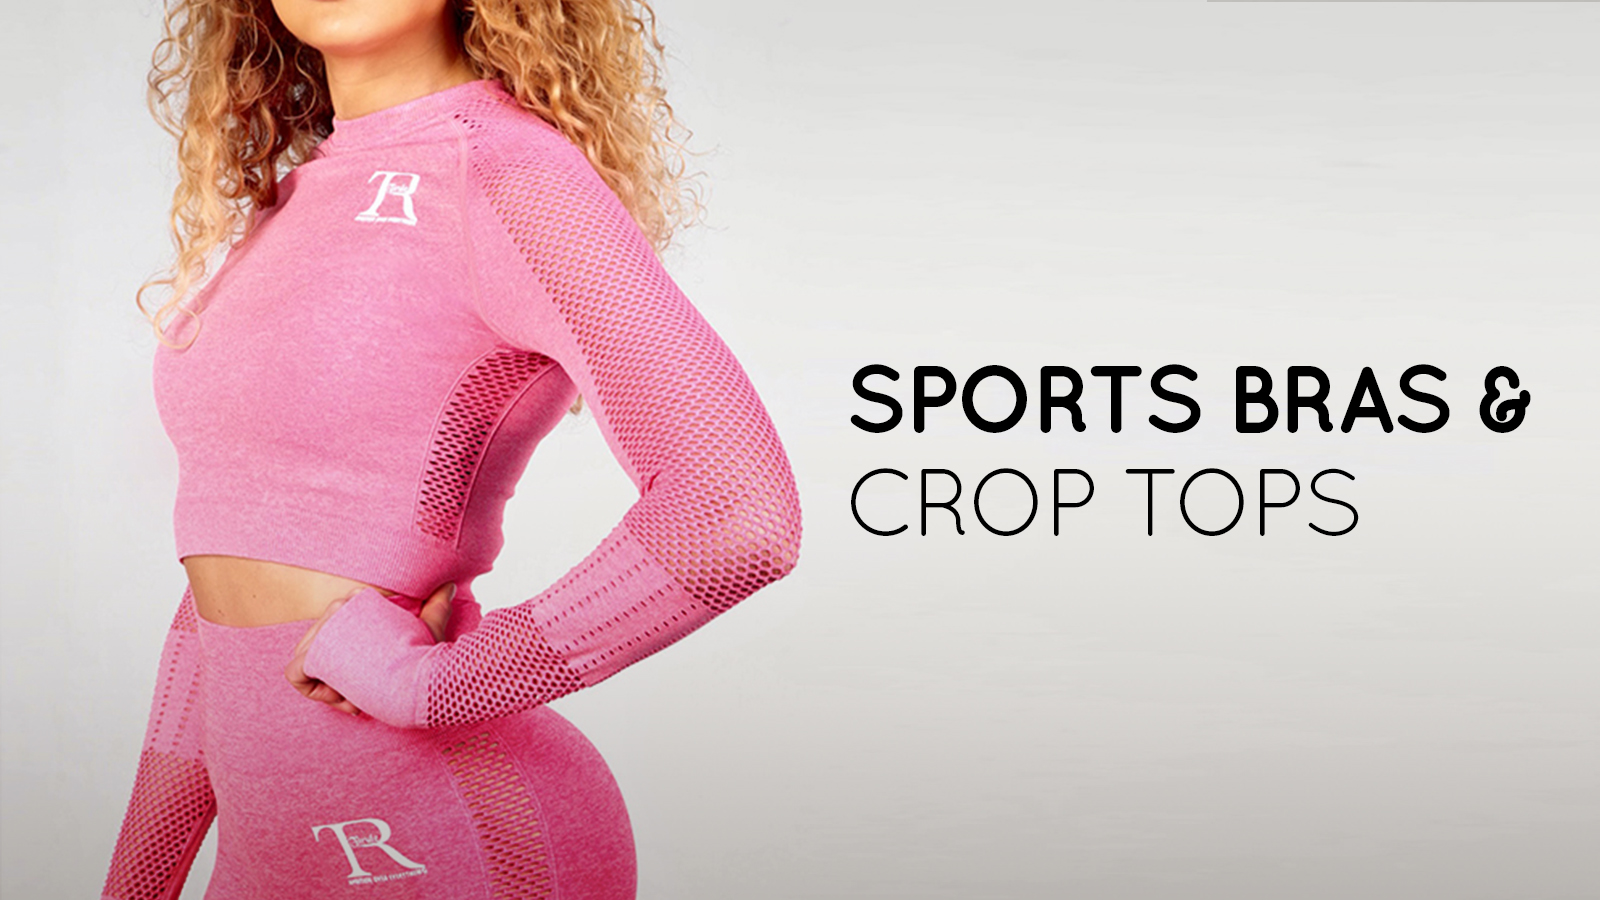 Comfortable high intensity moving sports bras and crop tops for running